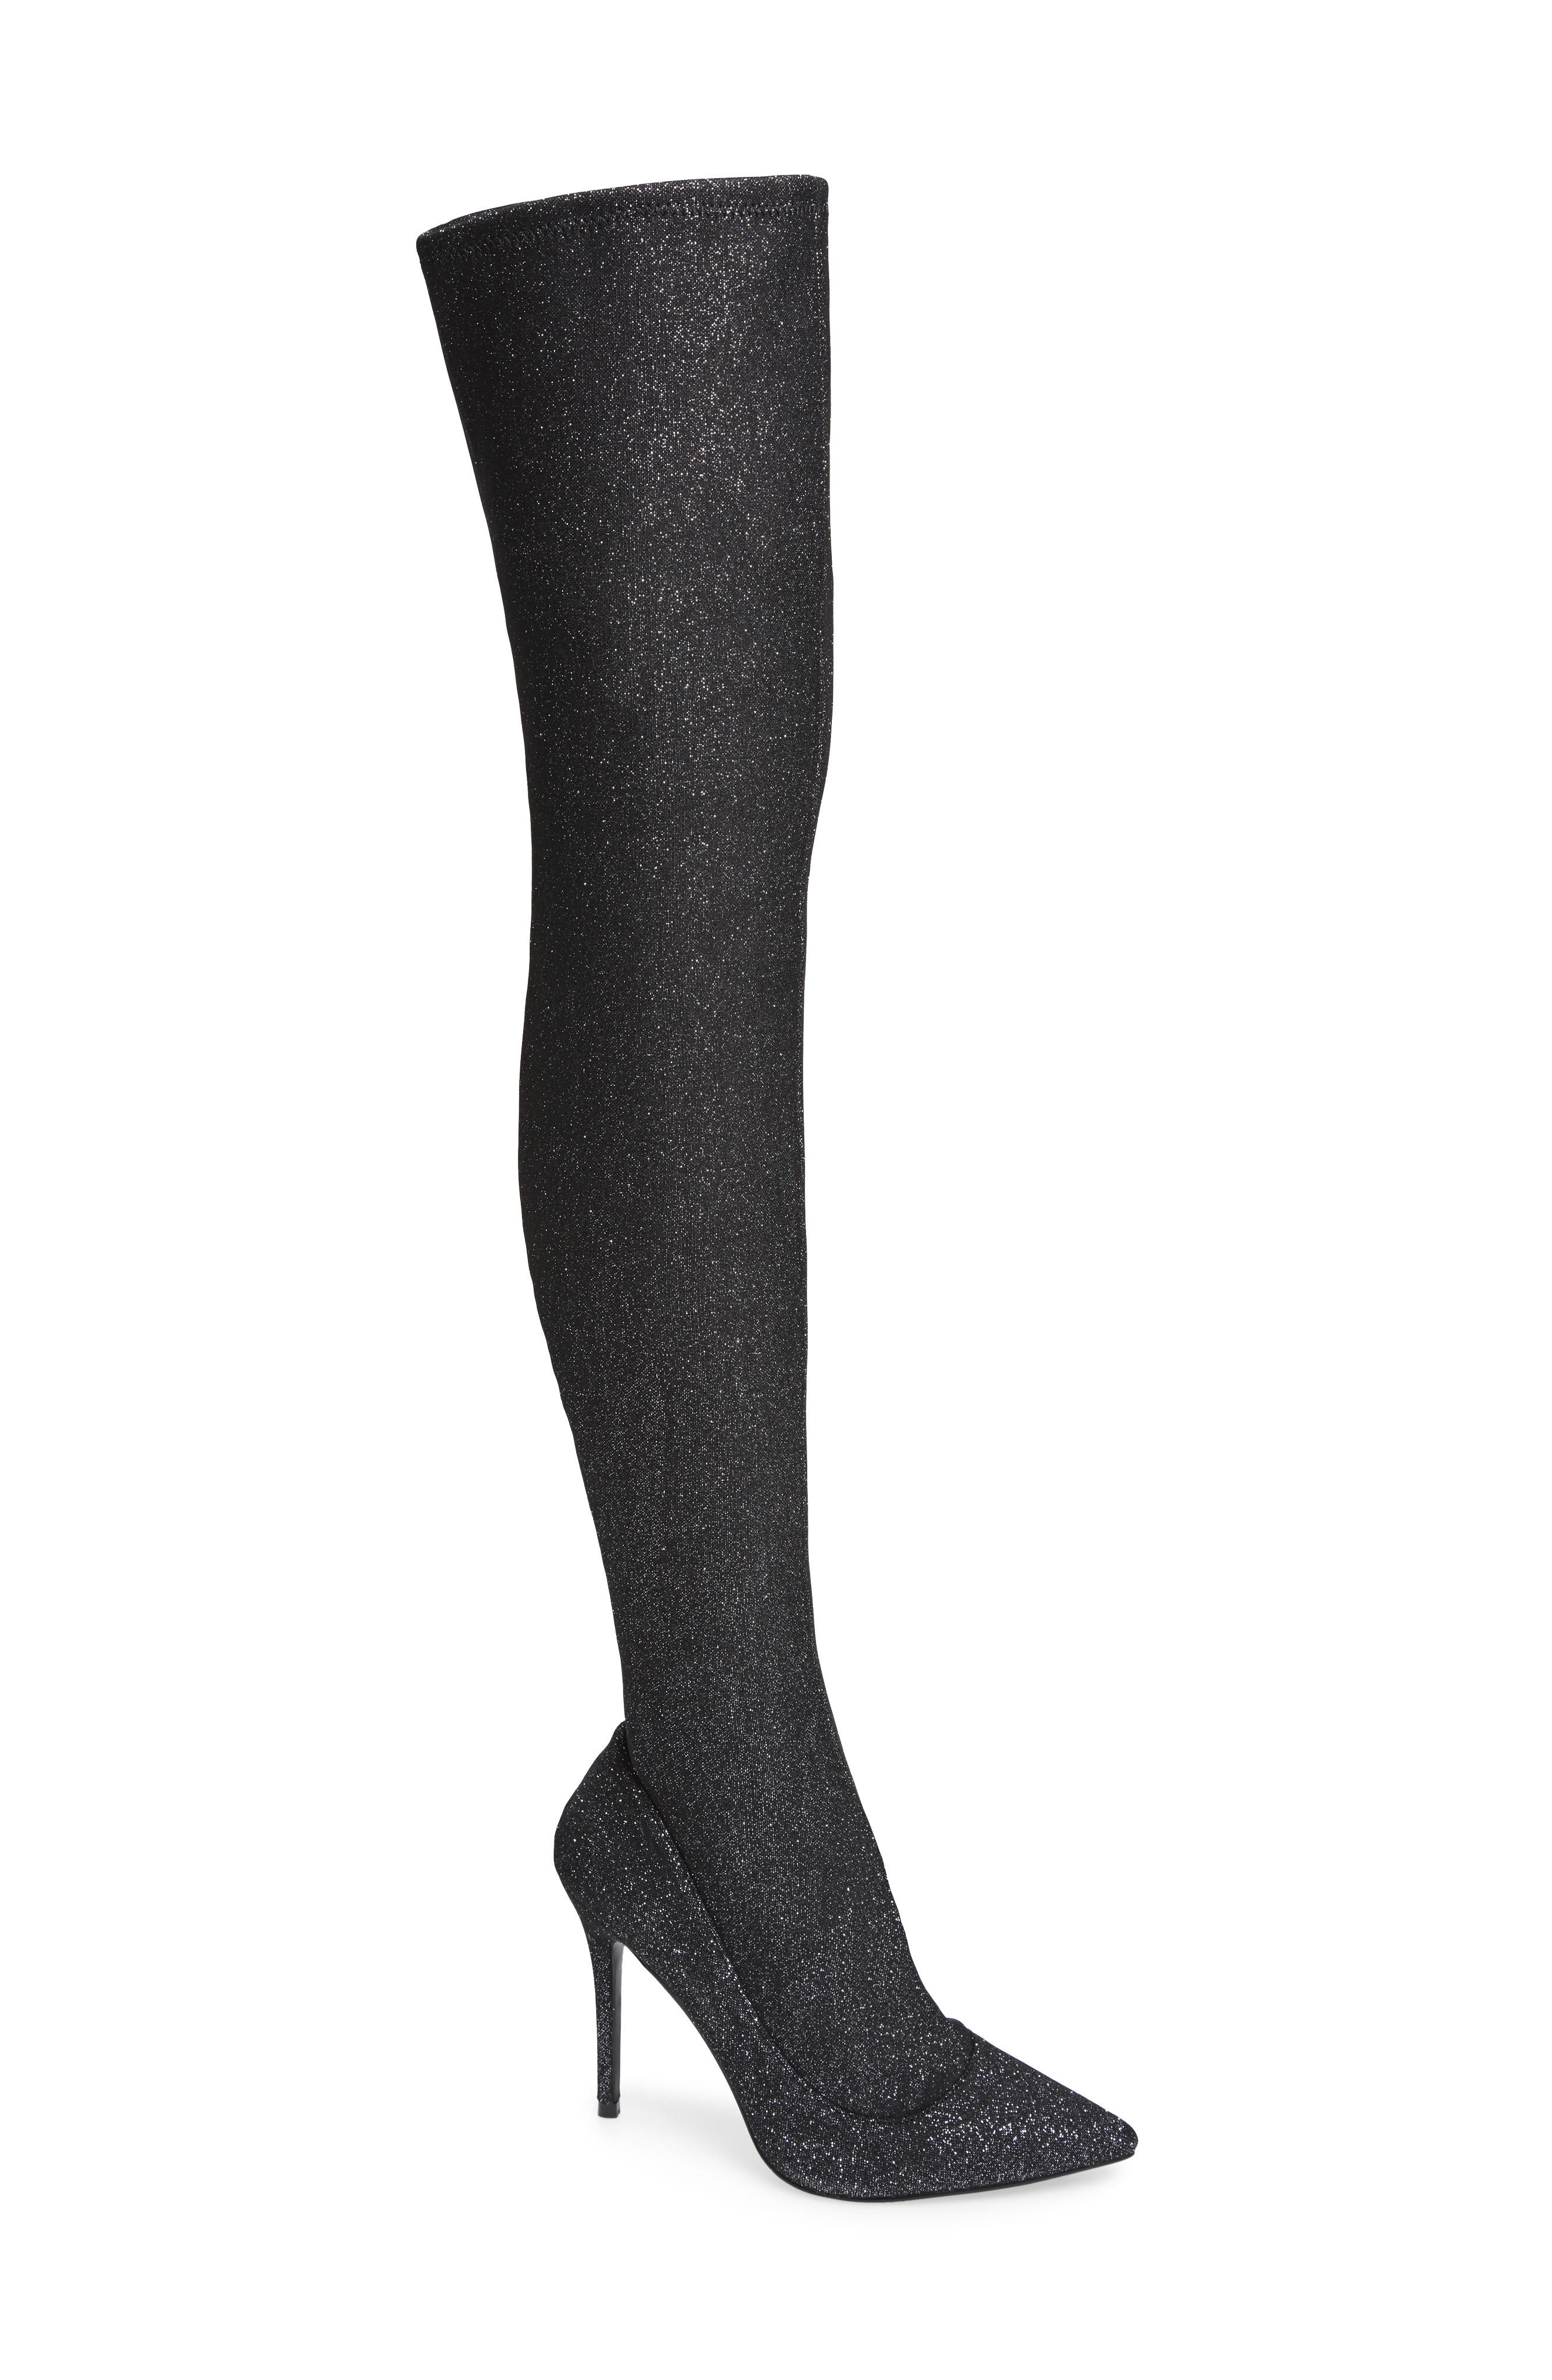 Bellini Stiletto Over the Knee Boot,                             Main thumbnail 1, color,                             SILVER